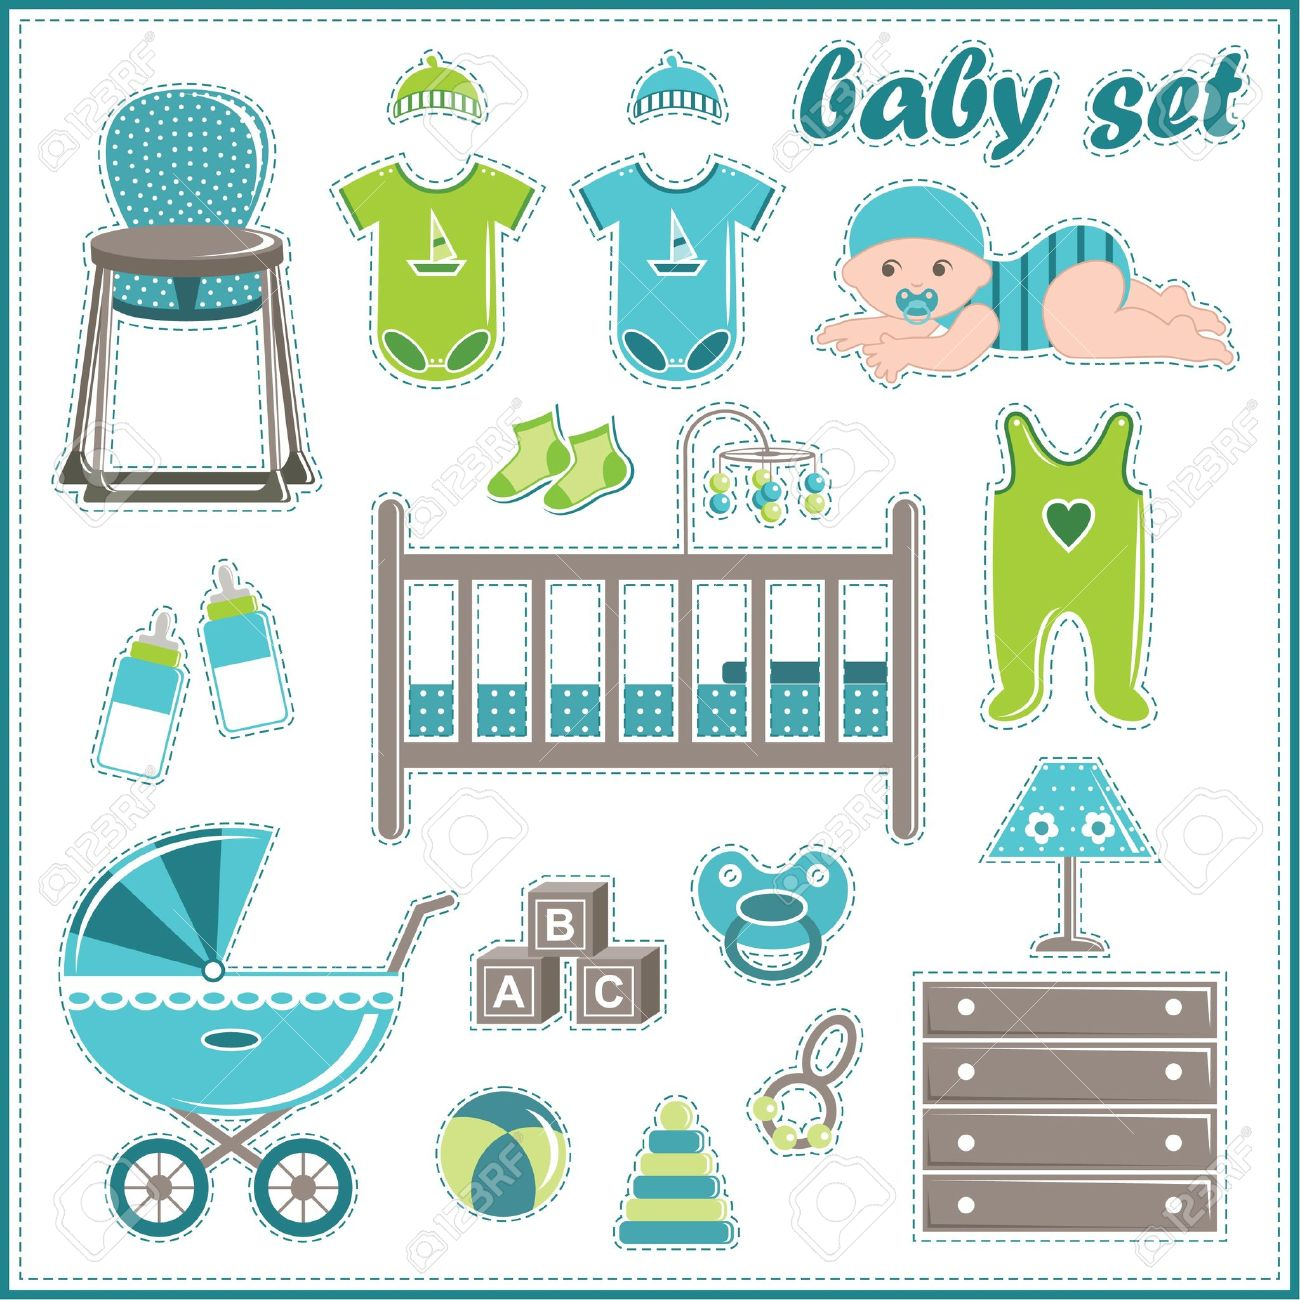 c63baf1b4 Scrapbook Elements With Baby Boy Things Royalty Free Cliparts ...